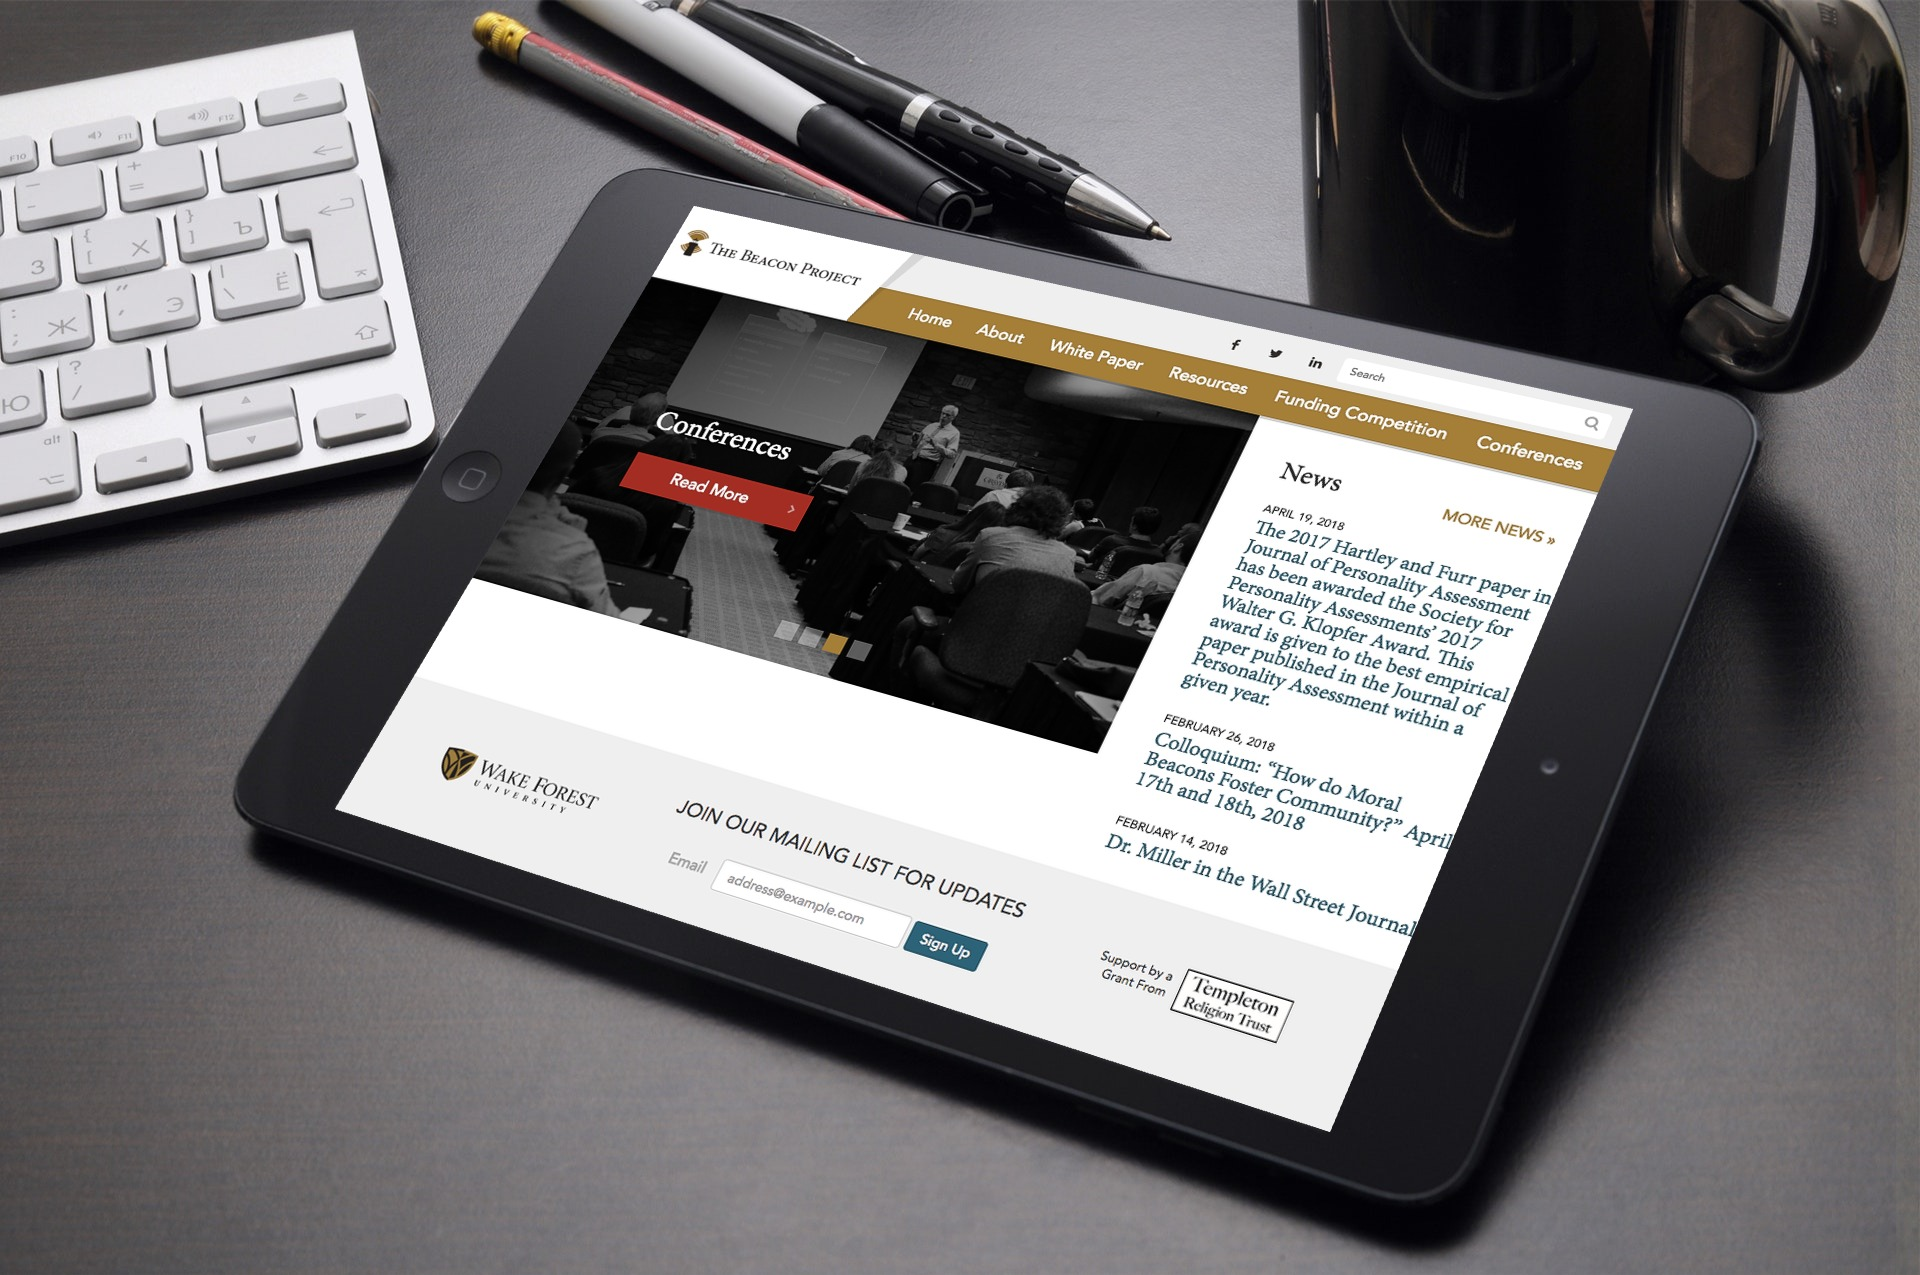 wfu beacon tablet smartmockups_jkokjd9l